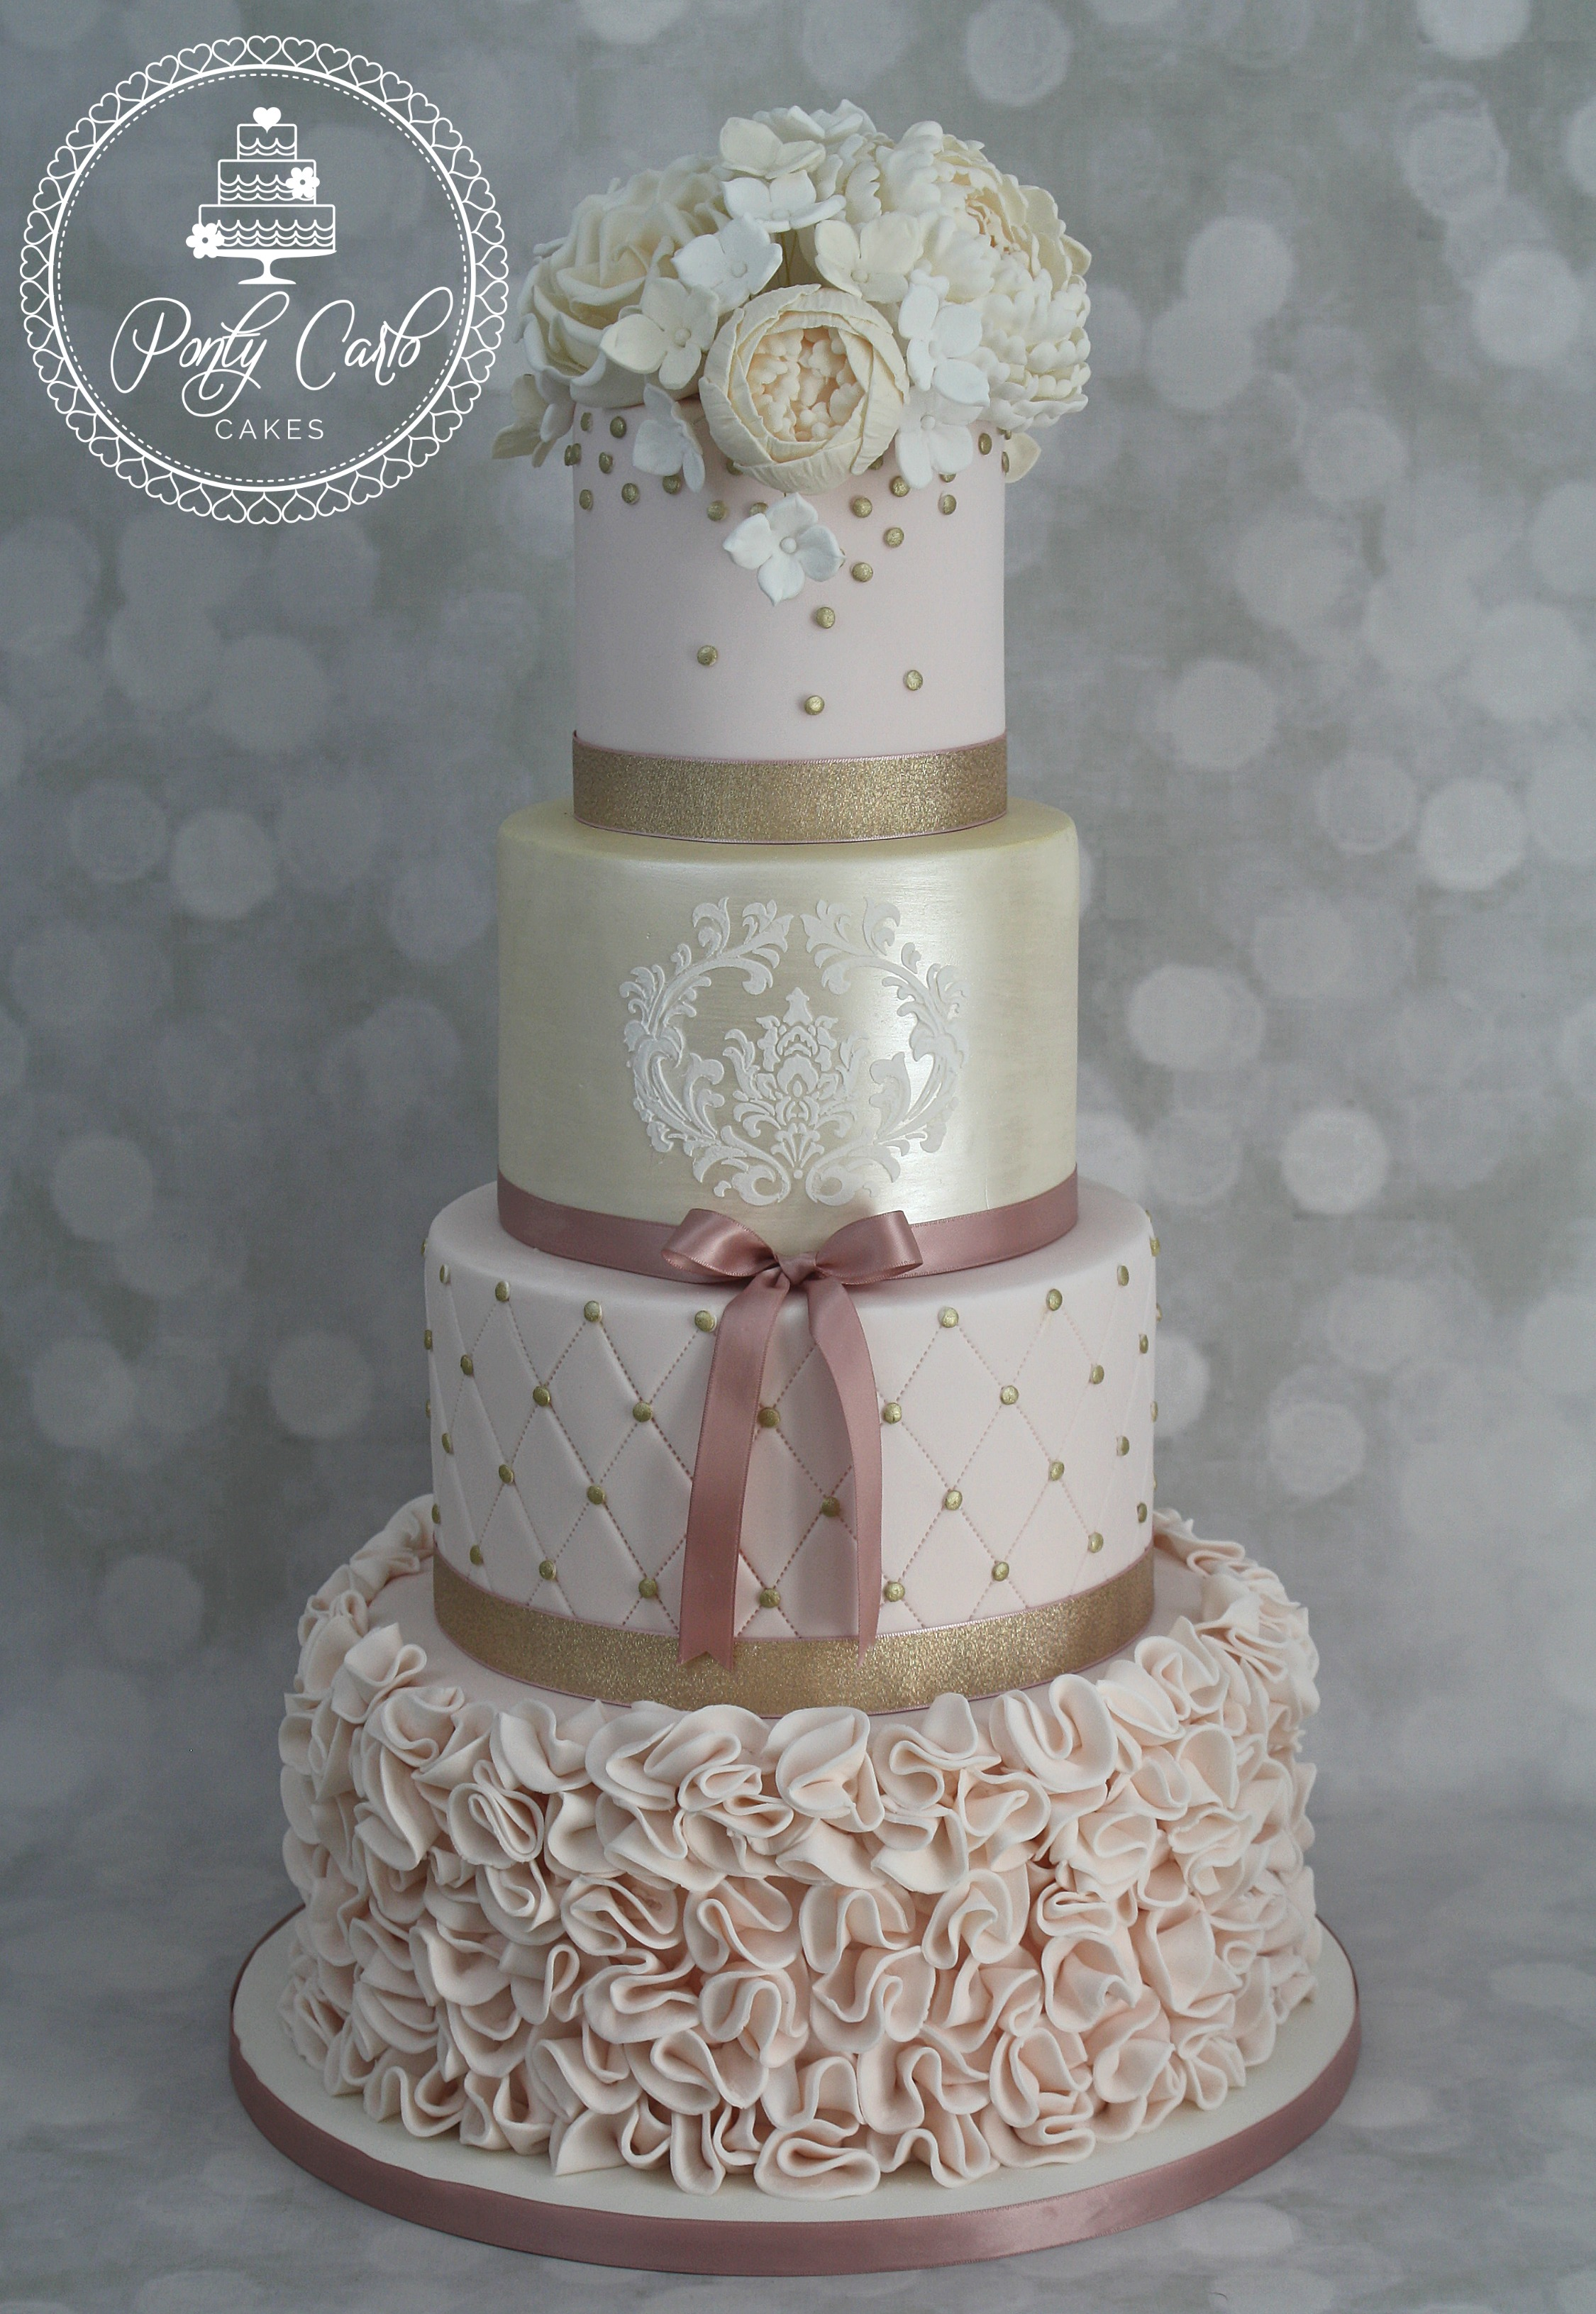 8 Staggered Wedding Cakes Four Tier Photo Square Wedding Cake